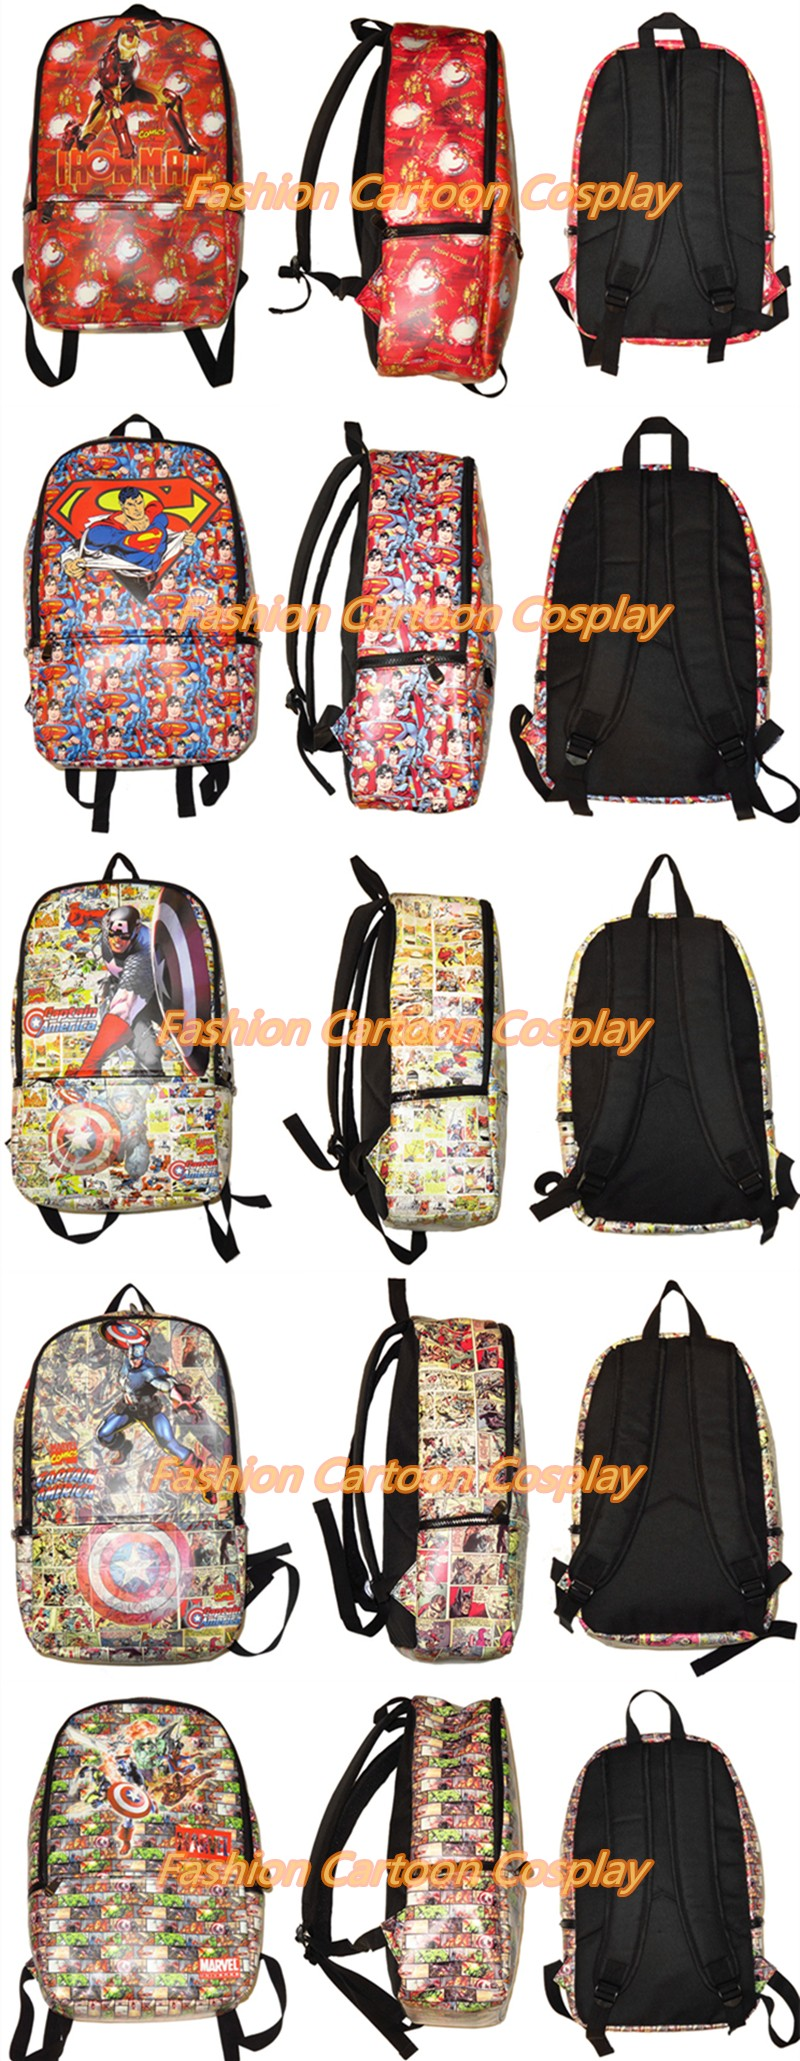 2018 New Star Wars Cartoon Backpacks School Bags For Teenagers Hard Drive Parts Pcb Logic Board Printed Circuit 100617465 Notewe Have Many Different Styles Ofbackpackclick Hereto Get More